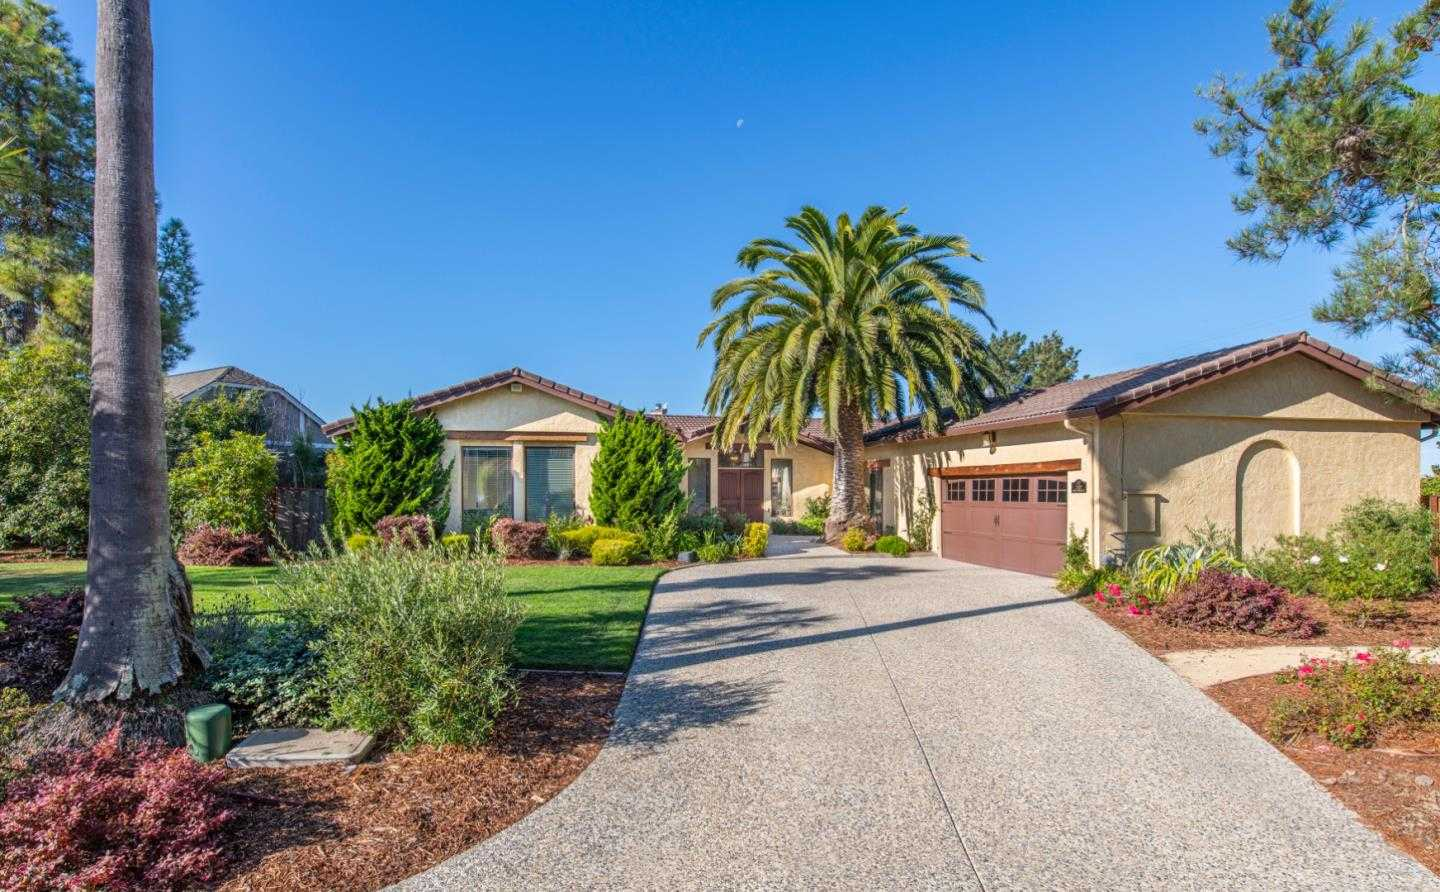 $1,599,000 - 4Br/3Ba -  for Sale in Half Moon Bay